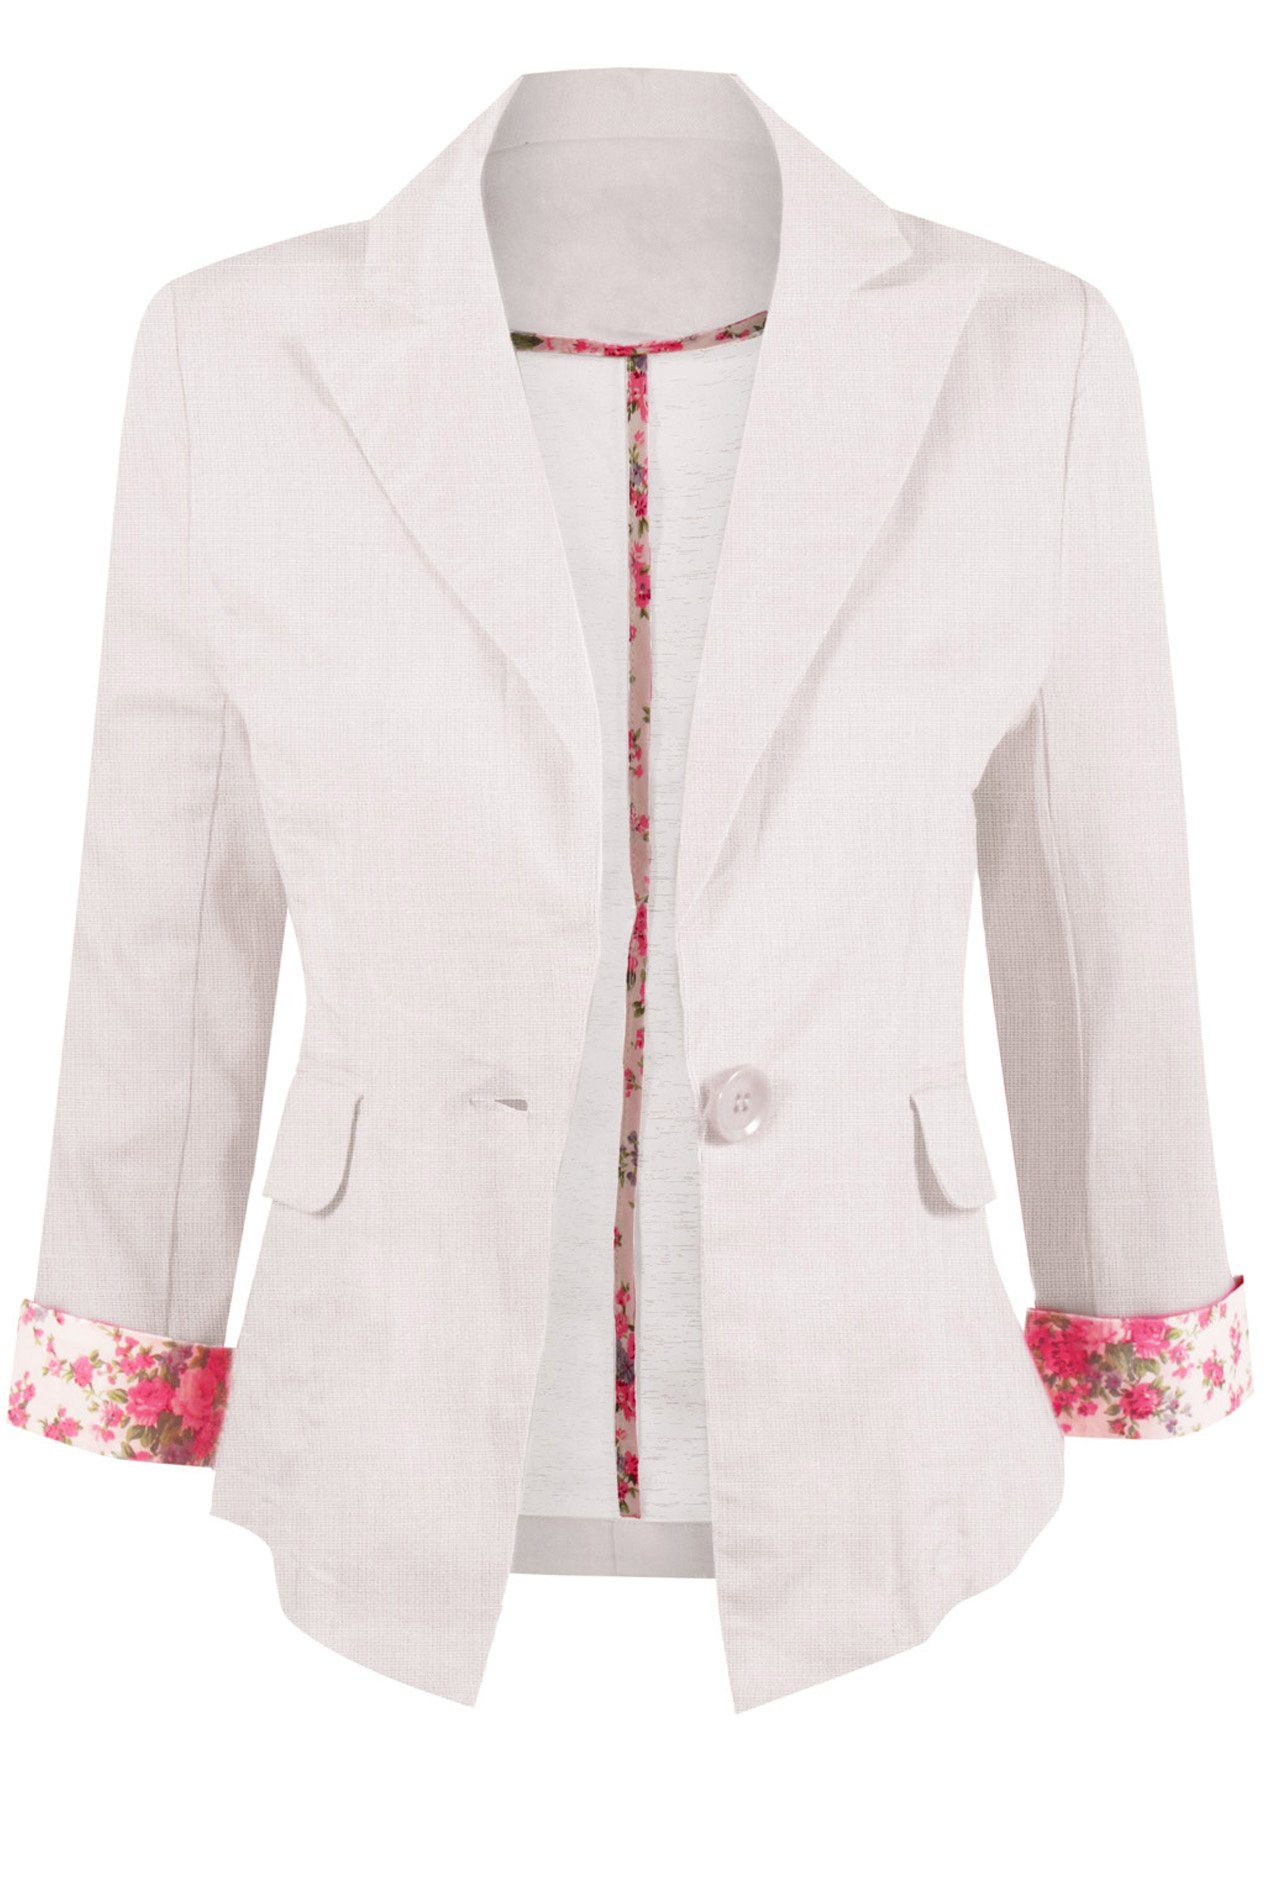 Casual Lightweight Linen Blend Blazer with A Notched Collar and Front Single Button Closure